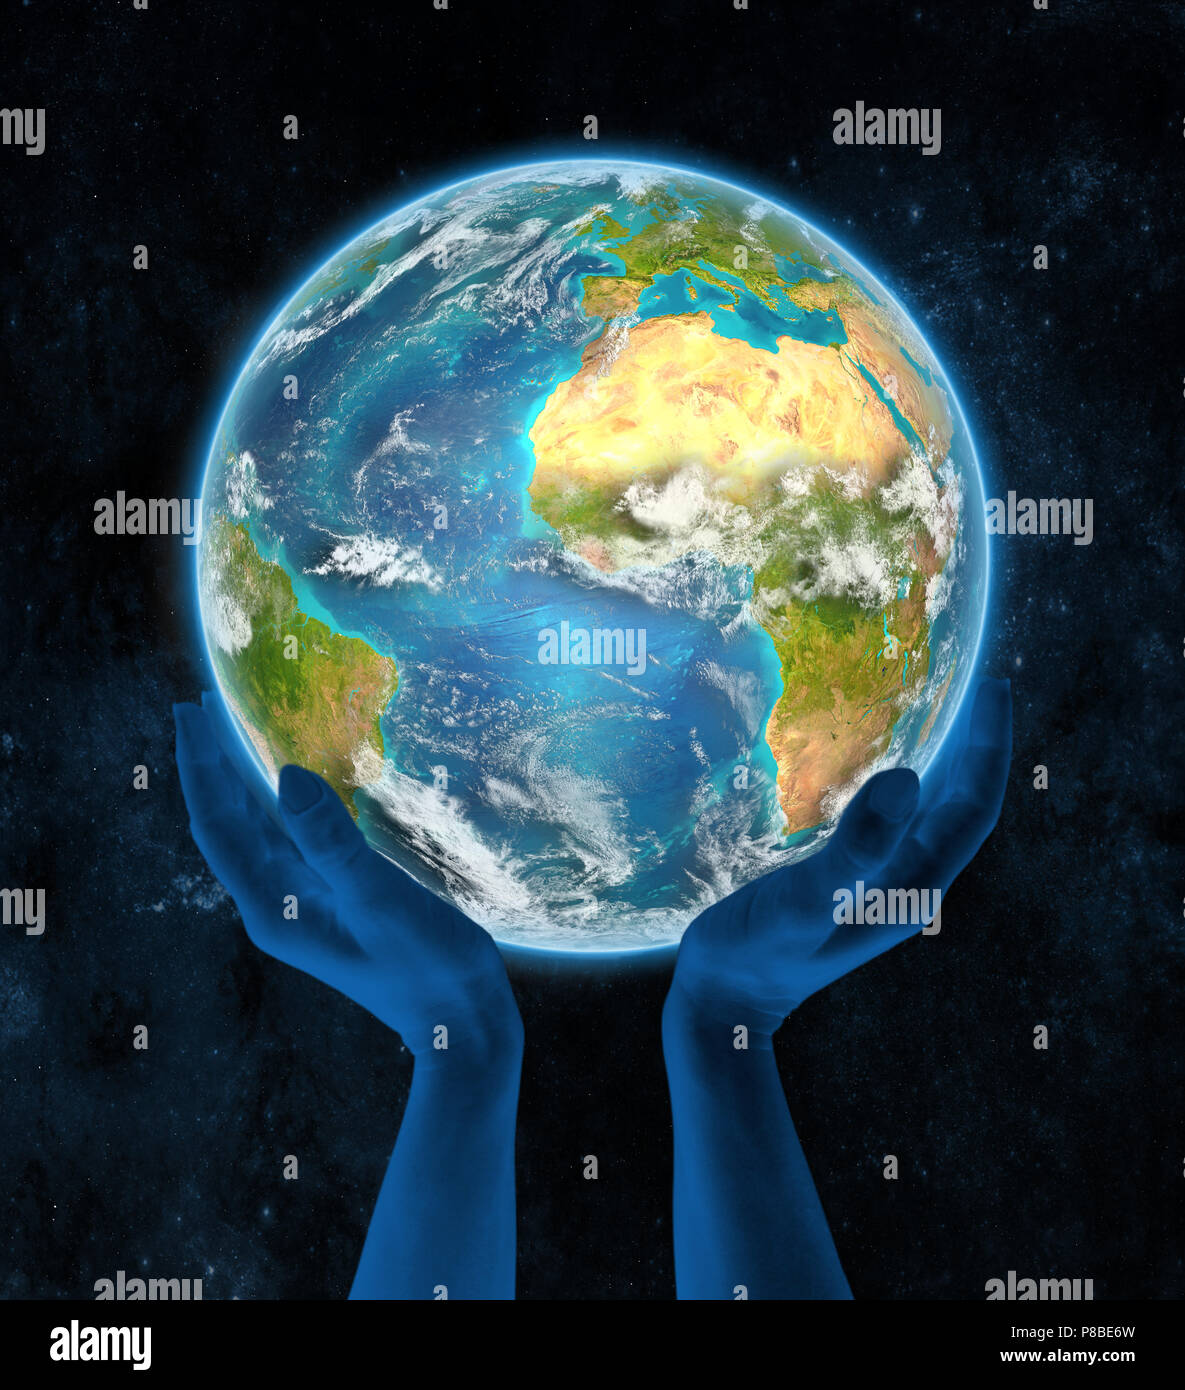 Liberia on Earth in hands in space. 3D illustration. - Stock Image